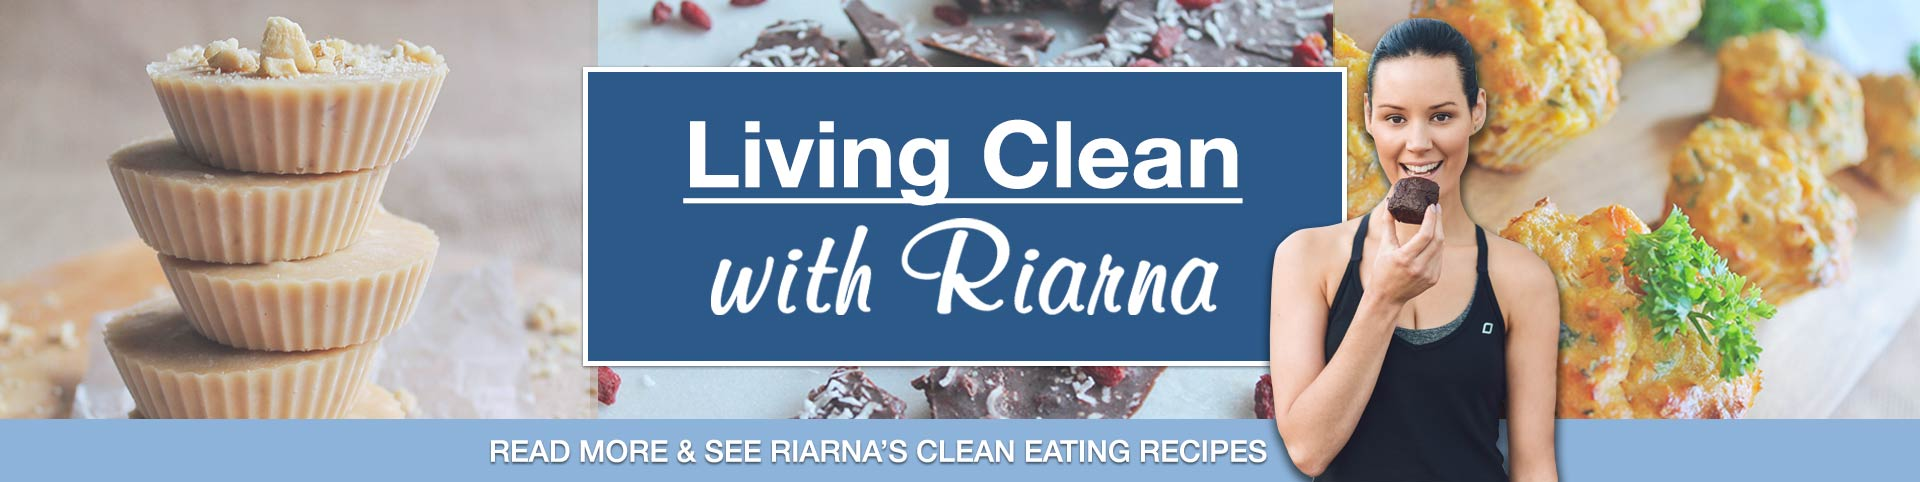 Living with riarna | Puratap | Water Filters Specialist in Adelaide